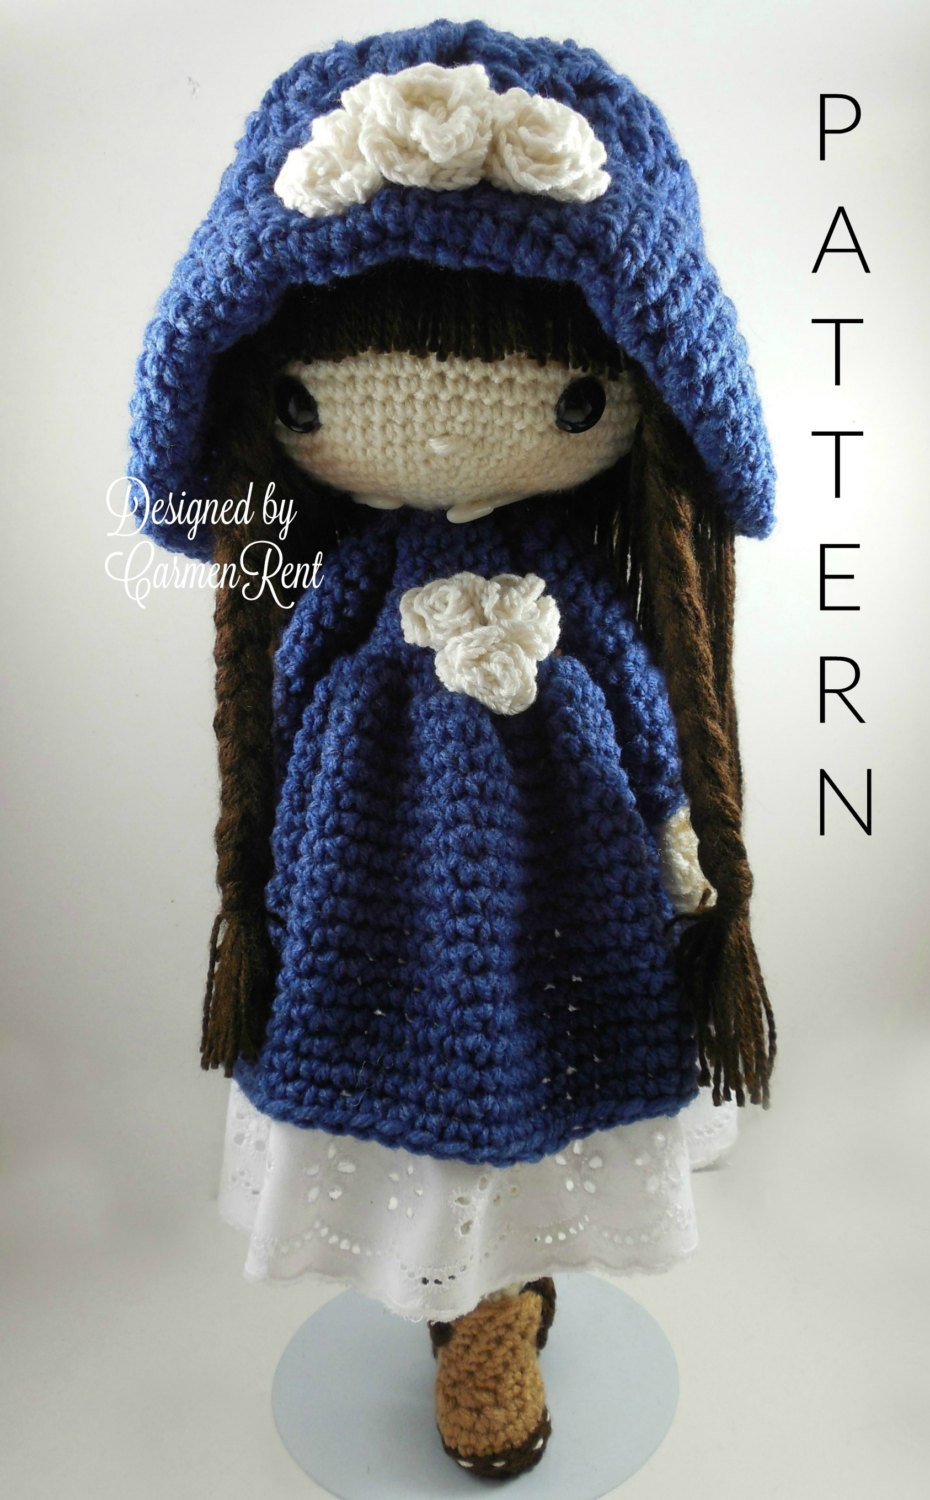 Doll Patterns Best Of Matilda Amigurumi Doll Crochet Pattern Pdf Of Doll Patterns Unique Knitting Patterns Dolls Clothes